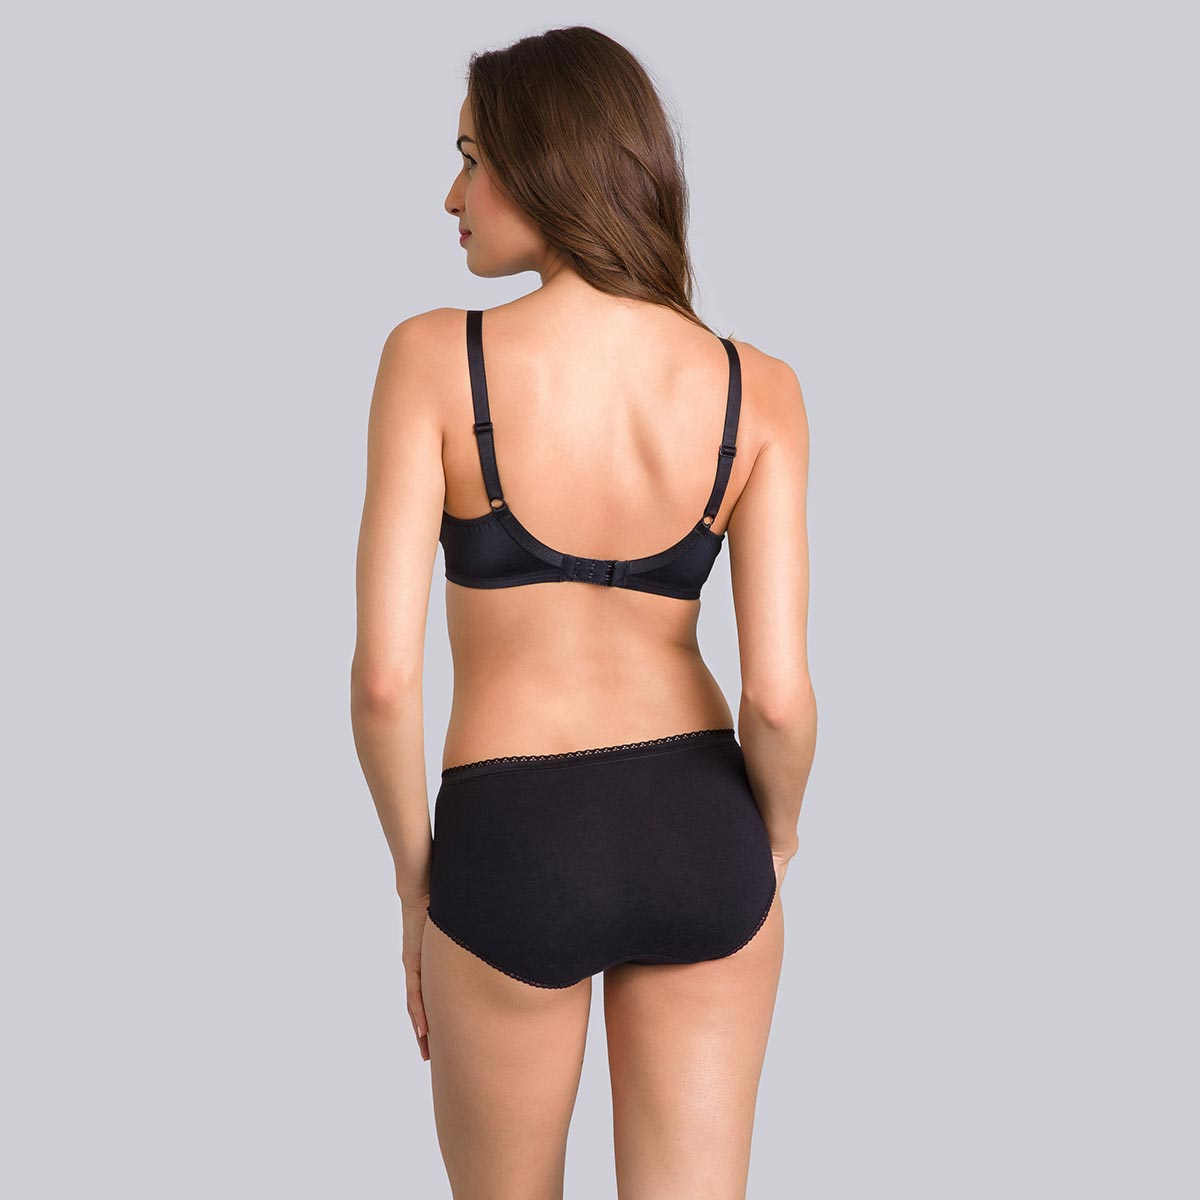 Non-Wired Full Cup Bra in Black - Cross Your Heart Modern Tricot-PLAYTEX